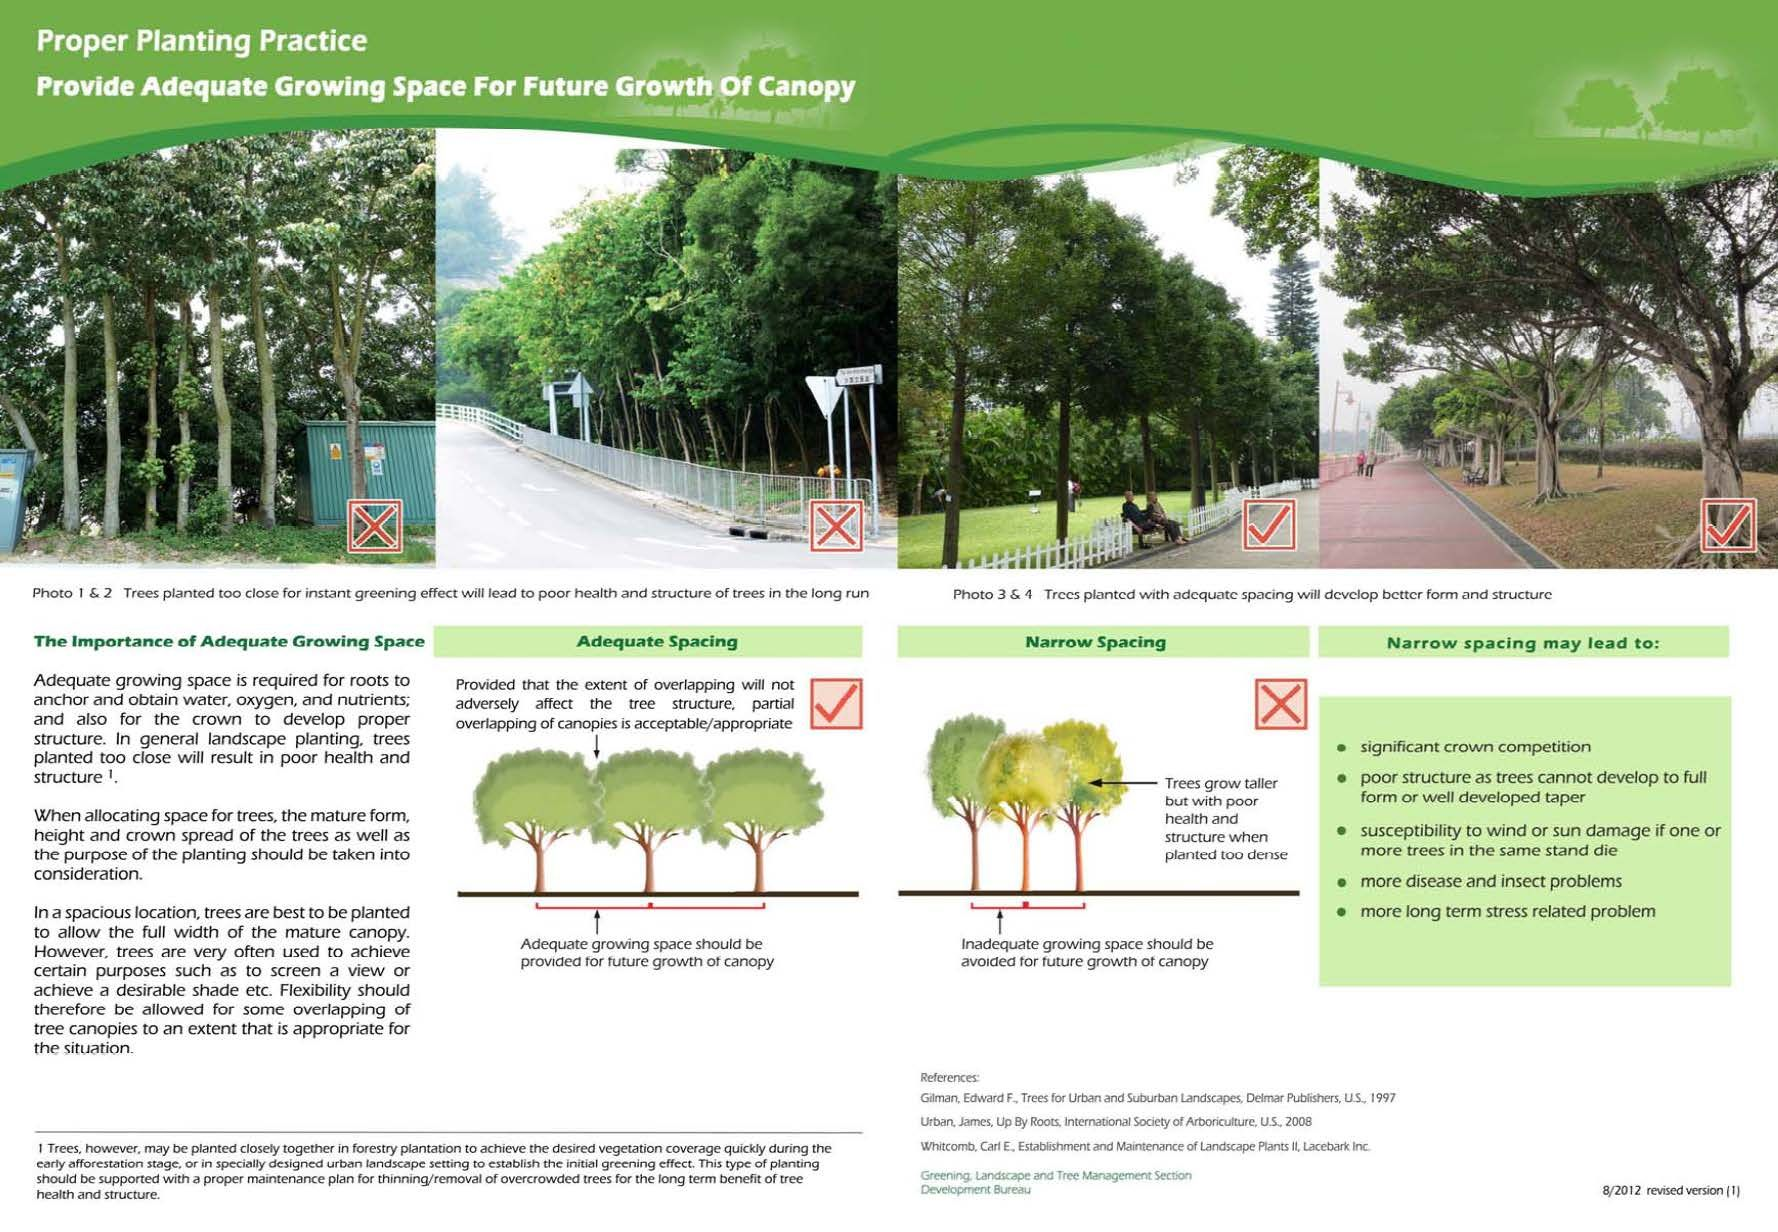 Sufficient Space And Quality Soil Is The Key To Support Healthy Tree Growth 1 Allow Sufficient Space Both Above And Below Ground F Tree Growth Tree Care Tree